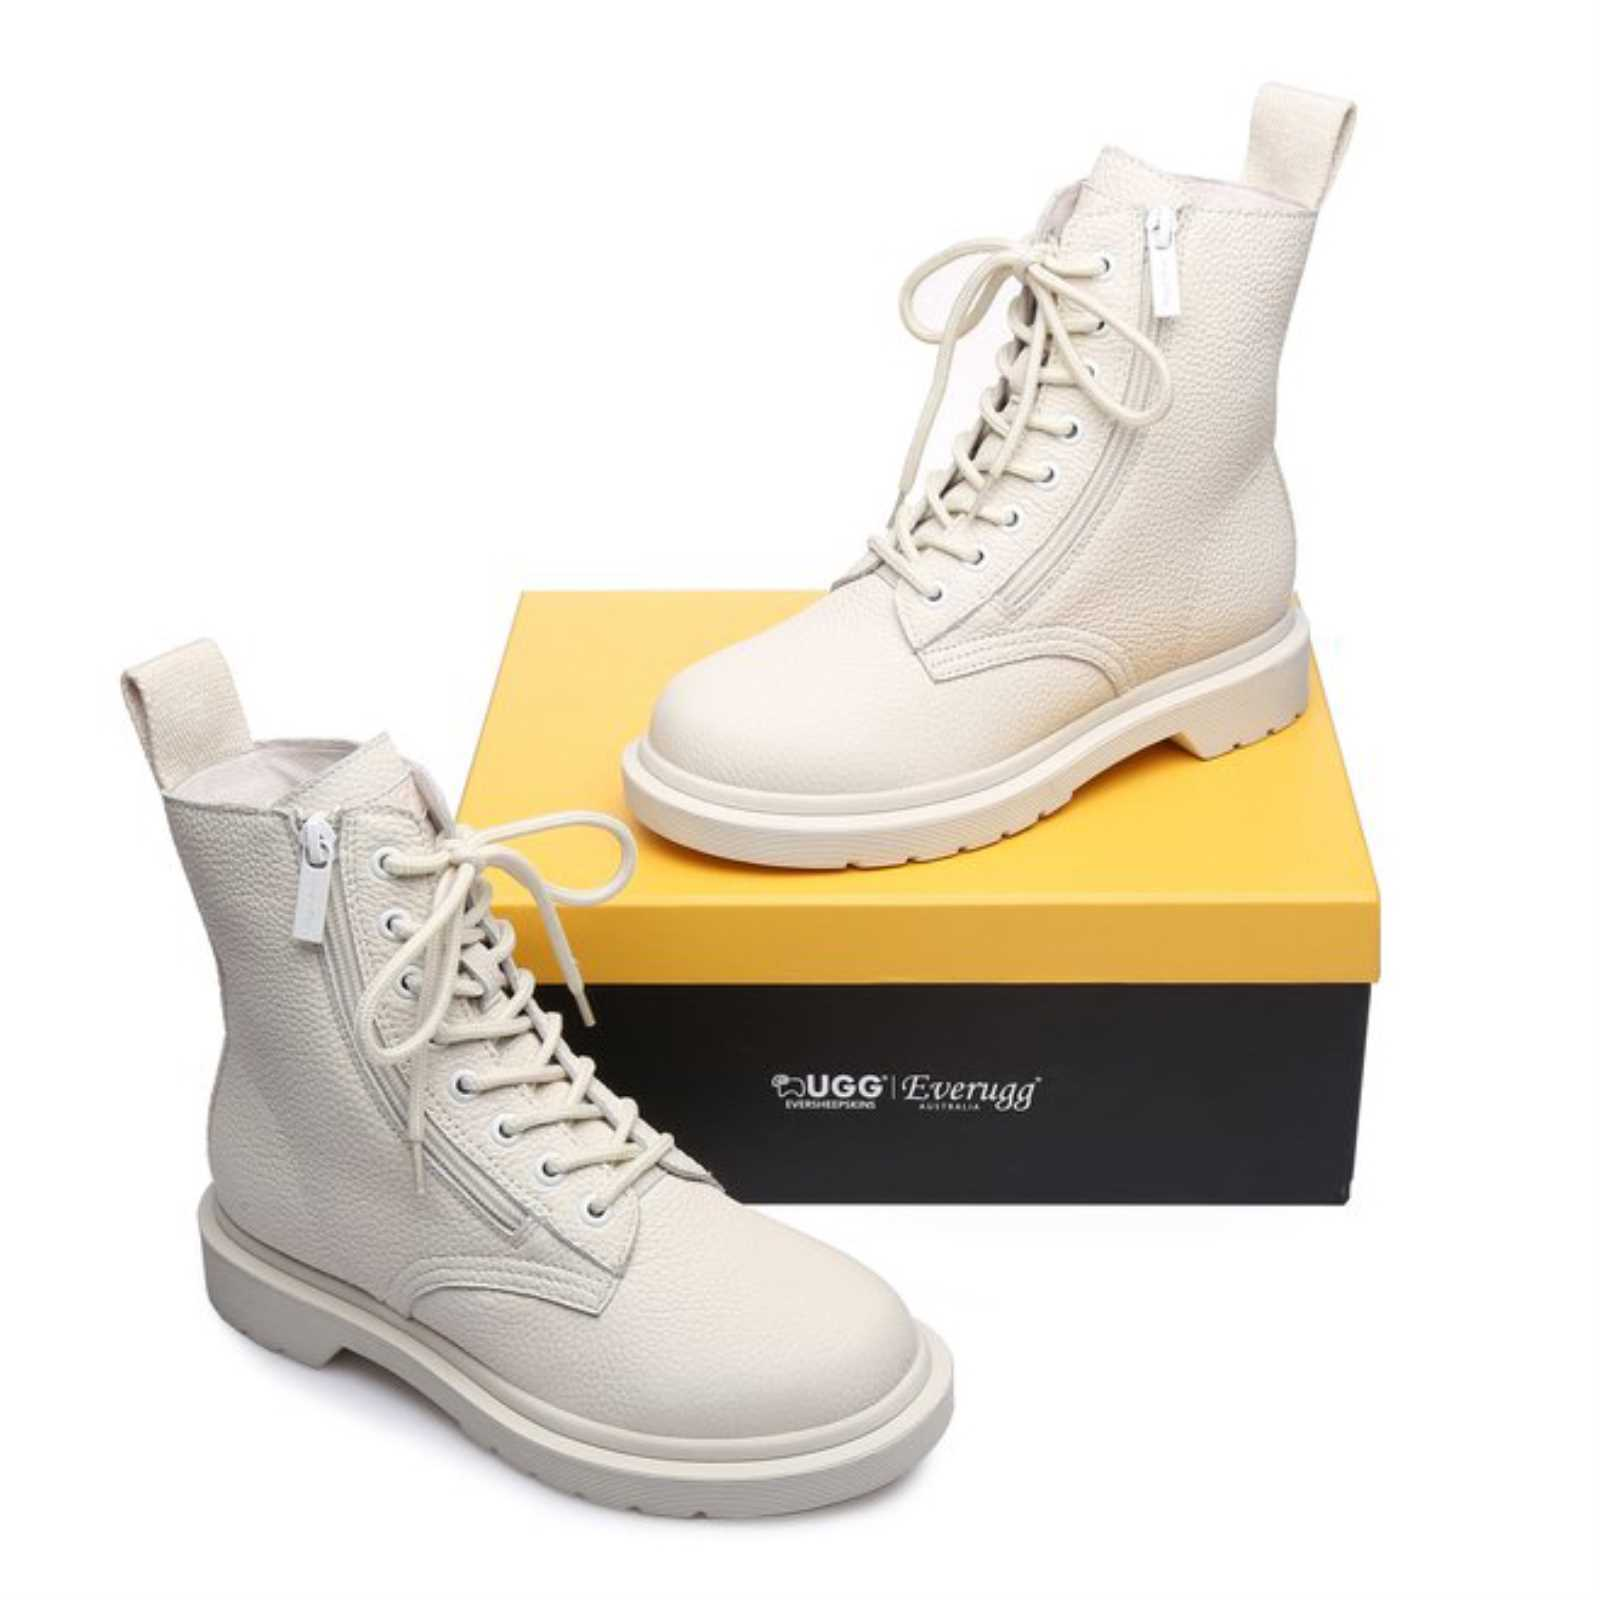 20b102206a2 Details about UGG ever Boots Ladies Luna 11797 Sheepskin Fashion Leather  Lining Front Lace Up